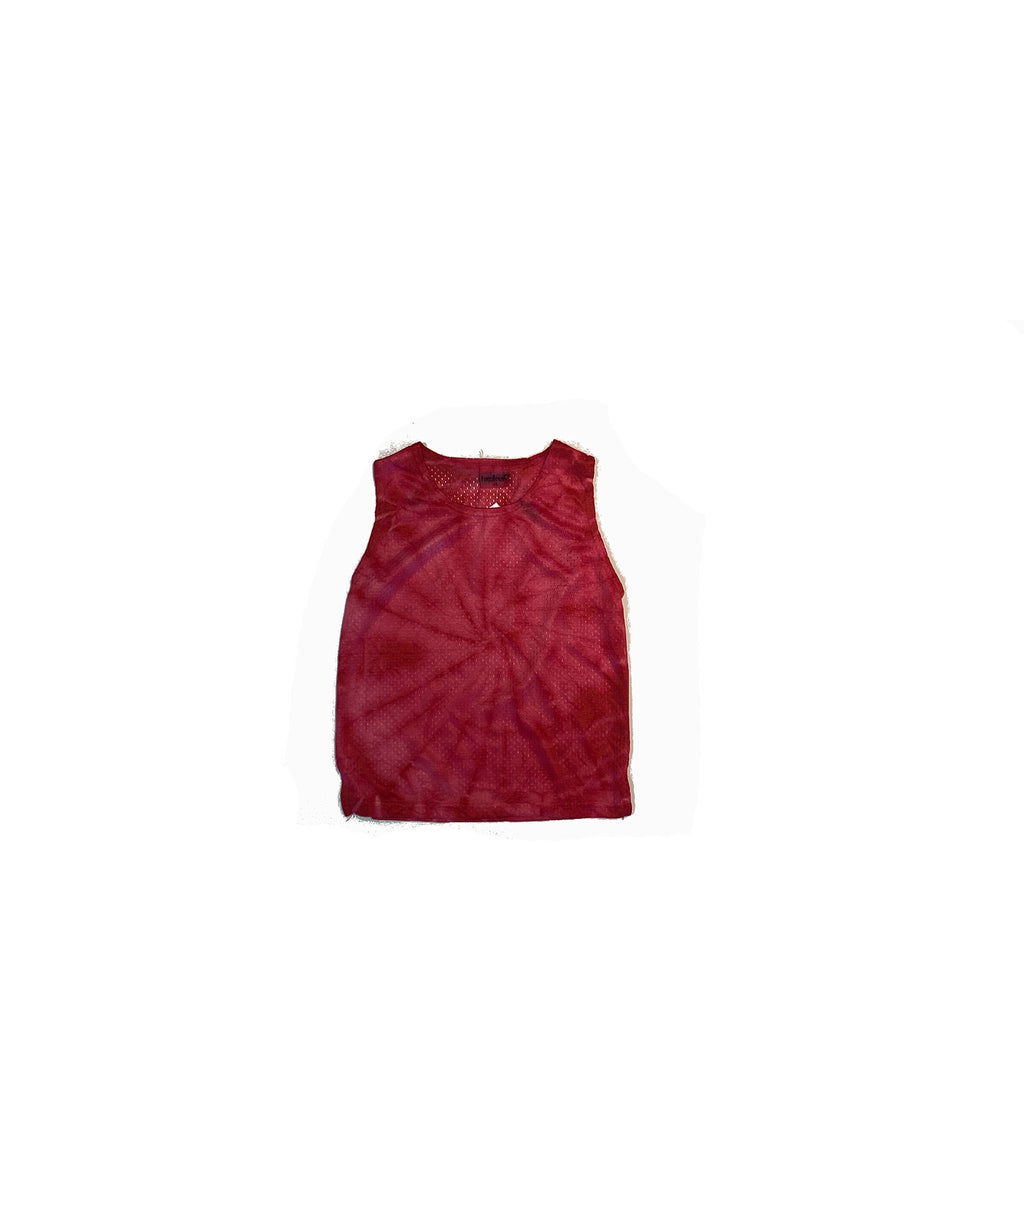 Firehouse Girls Red Tie-Dye Tank